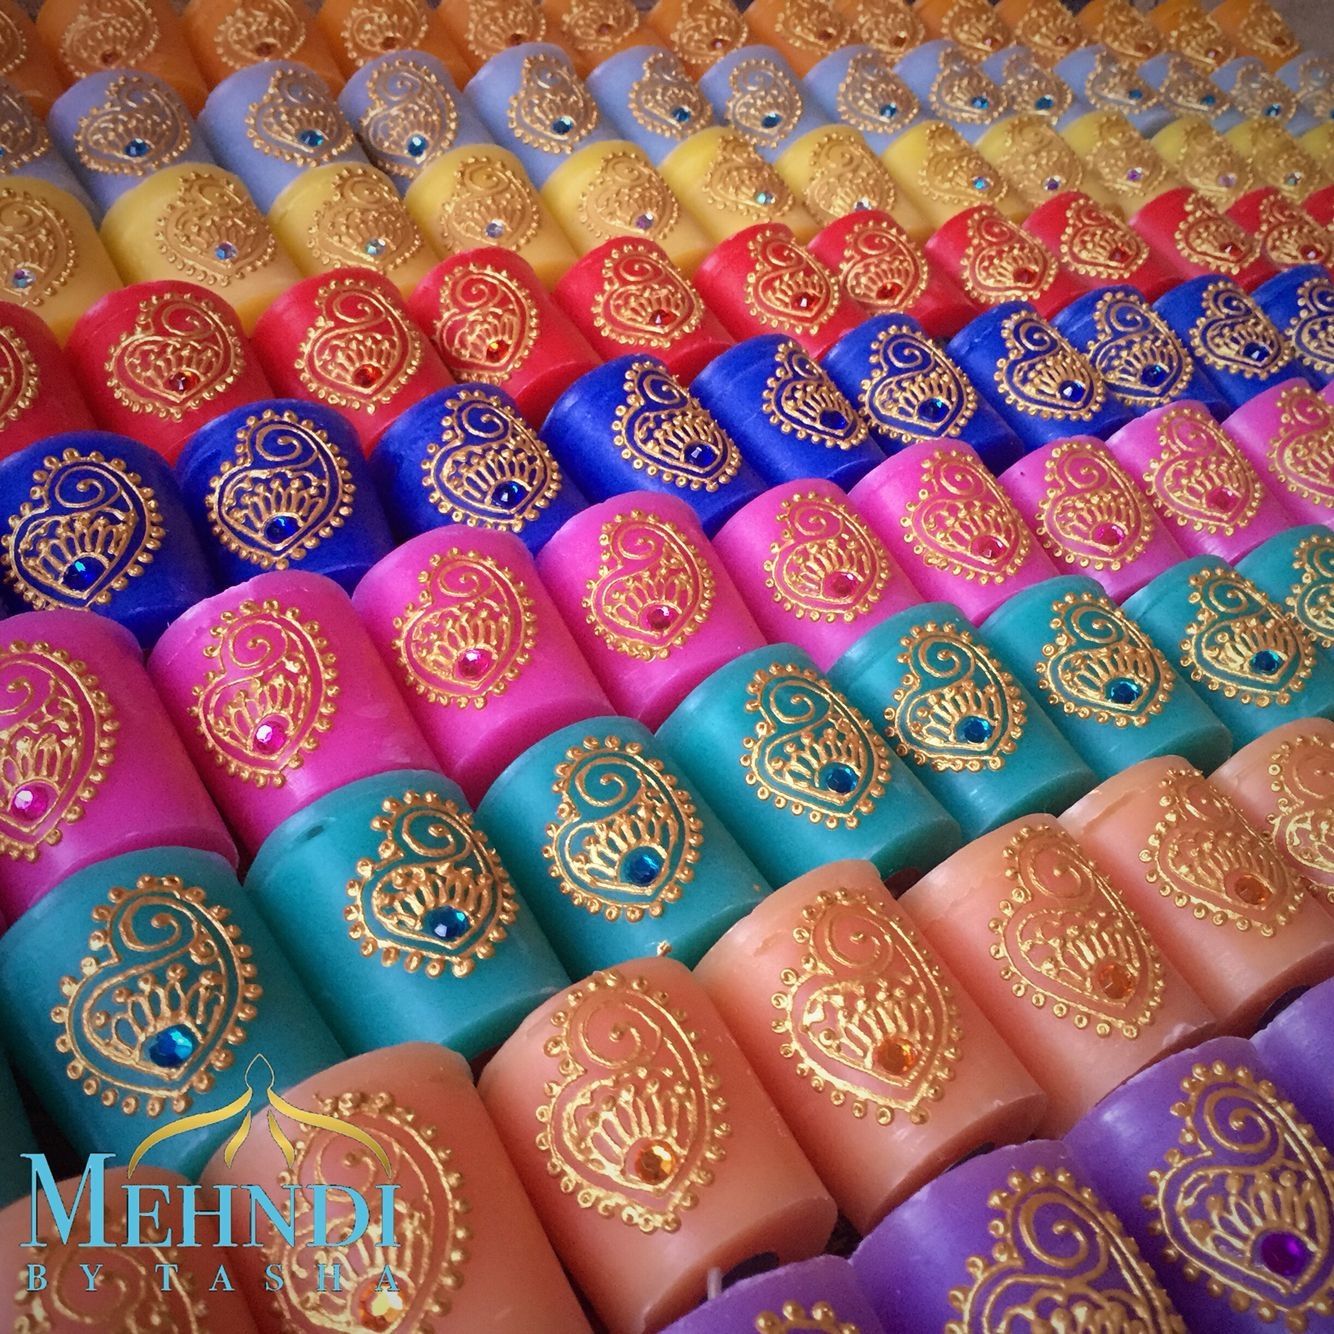 Indian Wedding Gifts: 150 Multi Coloured Candle Order! These Are Perfect For